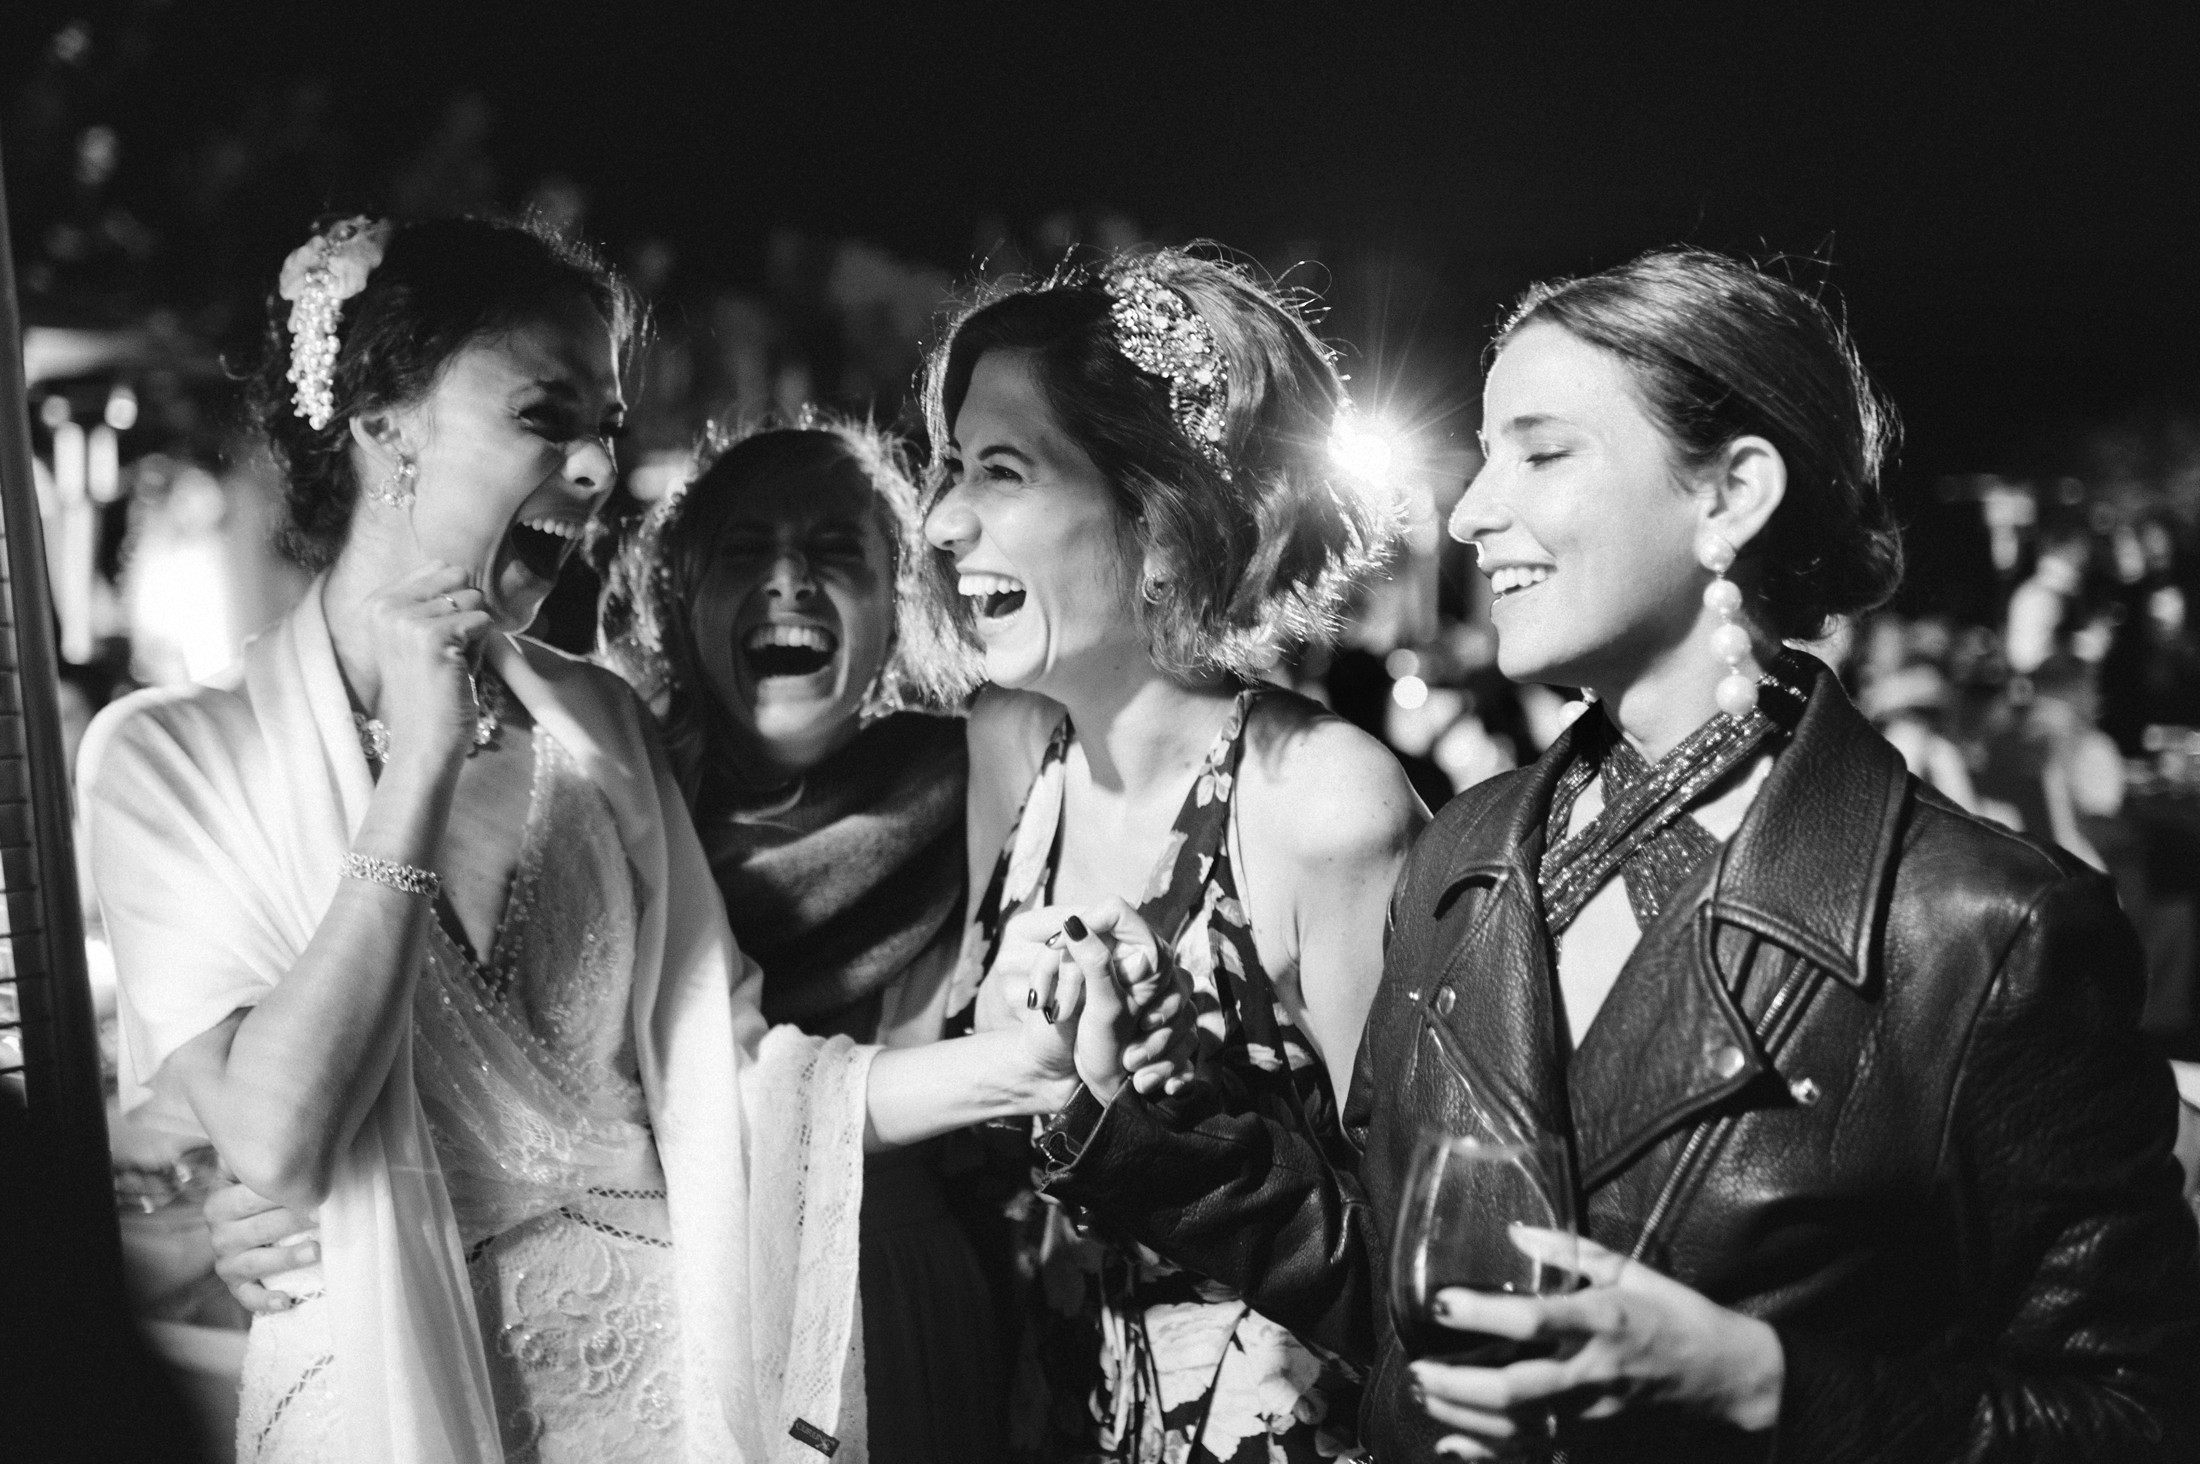 the bride laughing with some friends